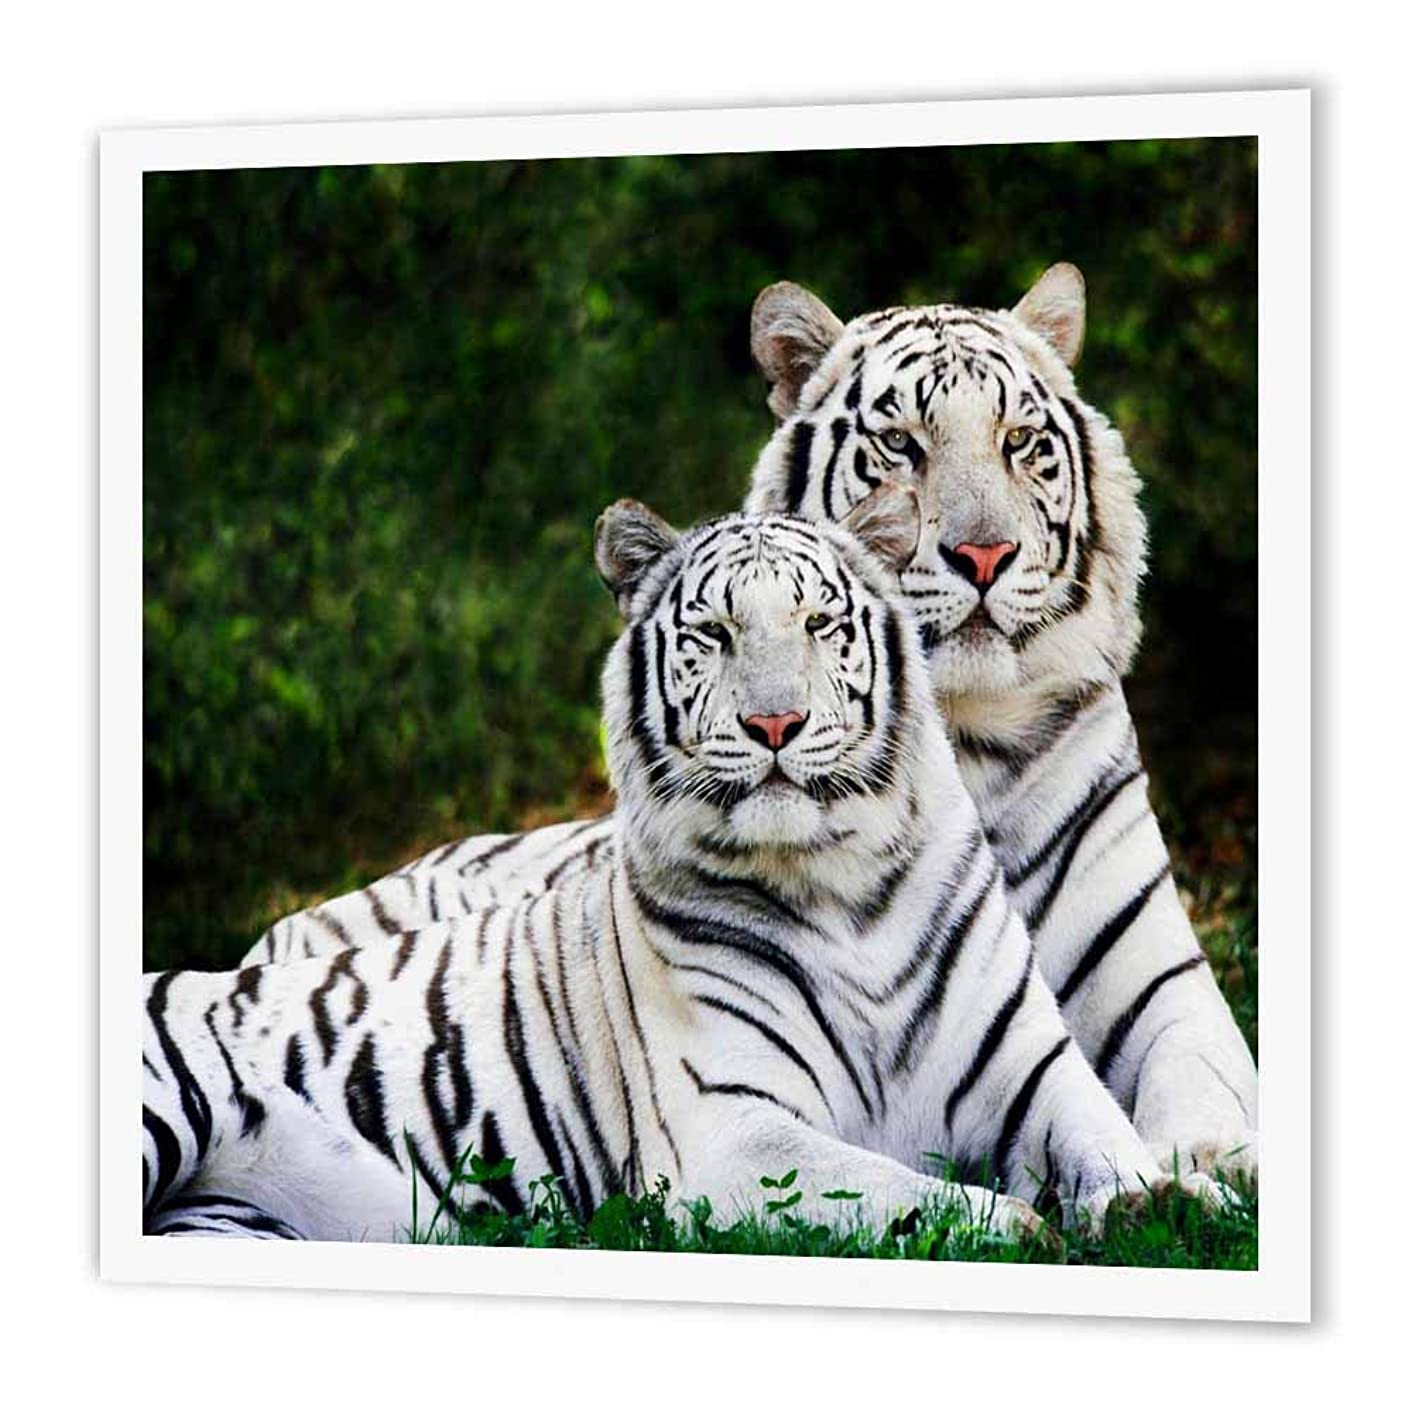 3dRose ht_54187_2 White Tigers-Iron on Heat Transfer for Material, 6 by 6-Inch, White